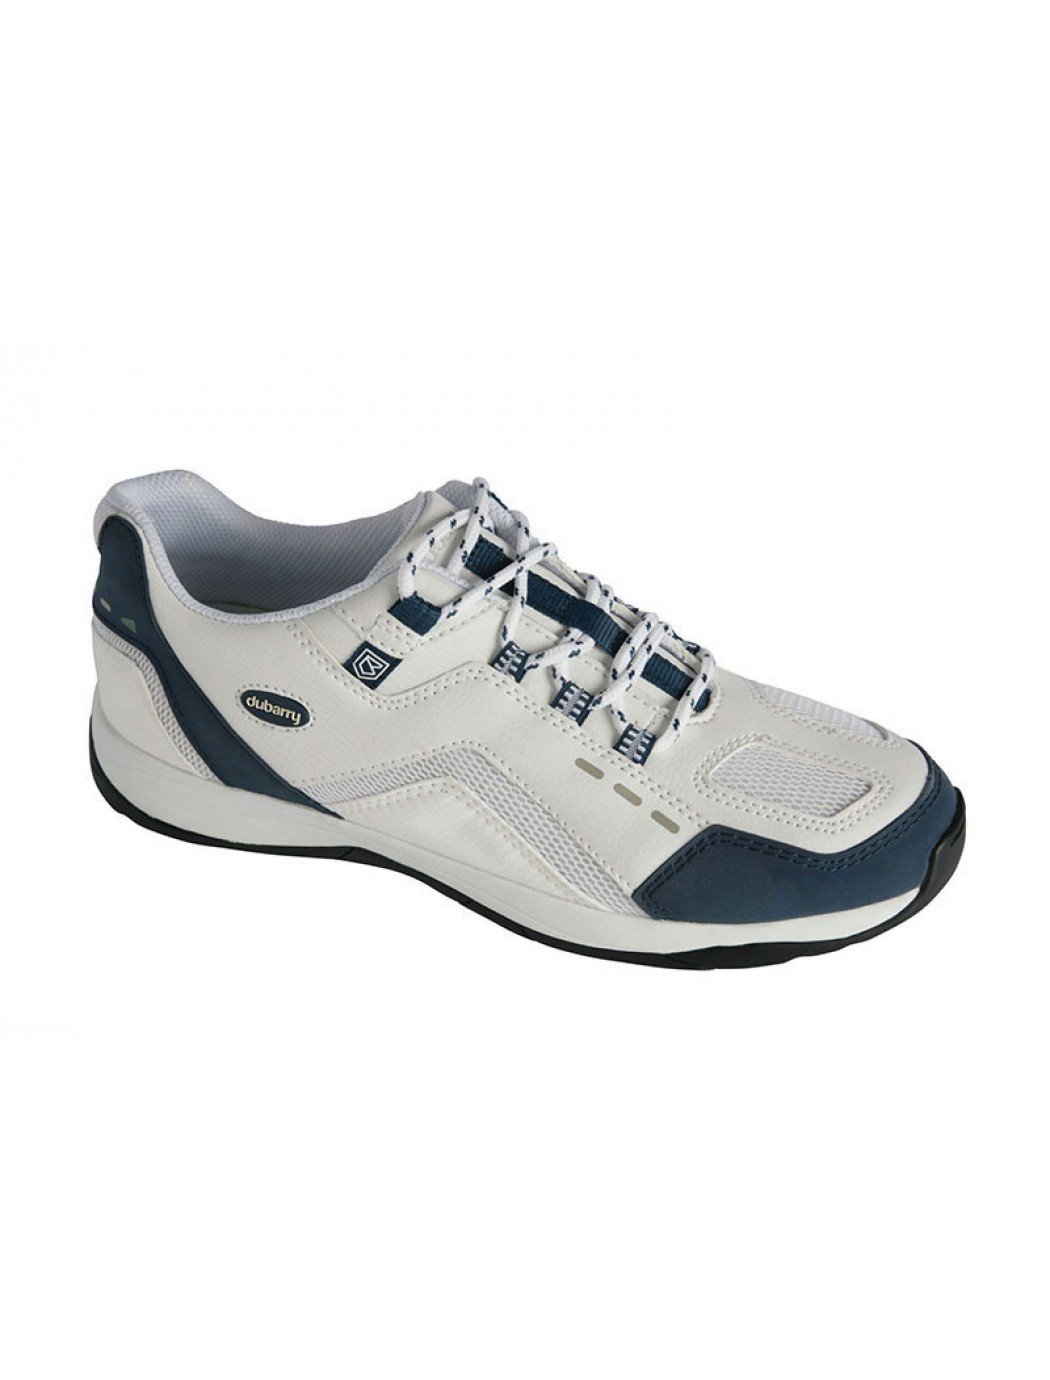 tornado-aquasport-white-navy